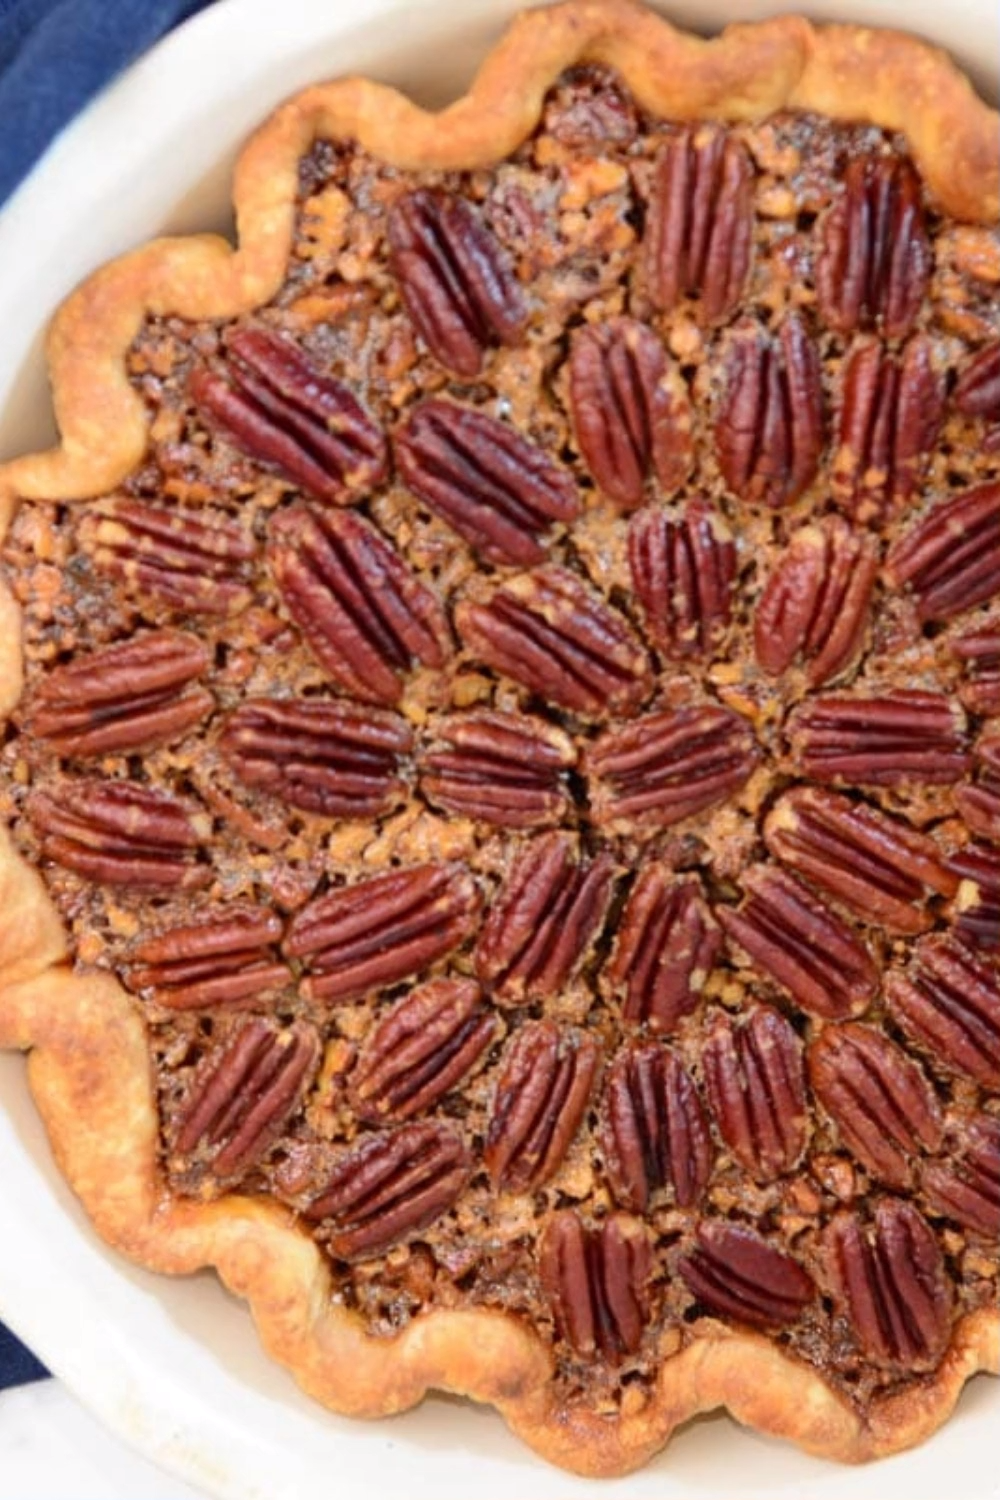 e7199c3d7127dd2eee47dc942f7abcf5 - Better Homes And Gardens Southern Pecan Pie Recipe